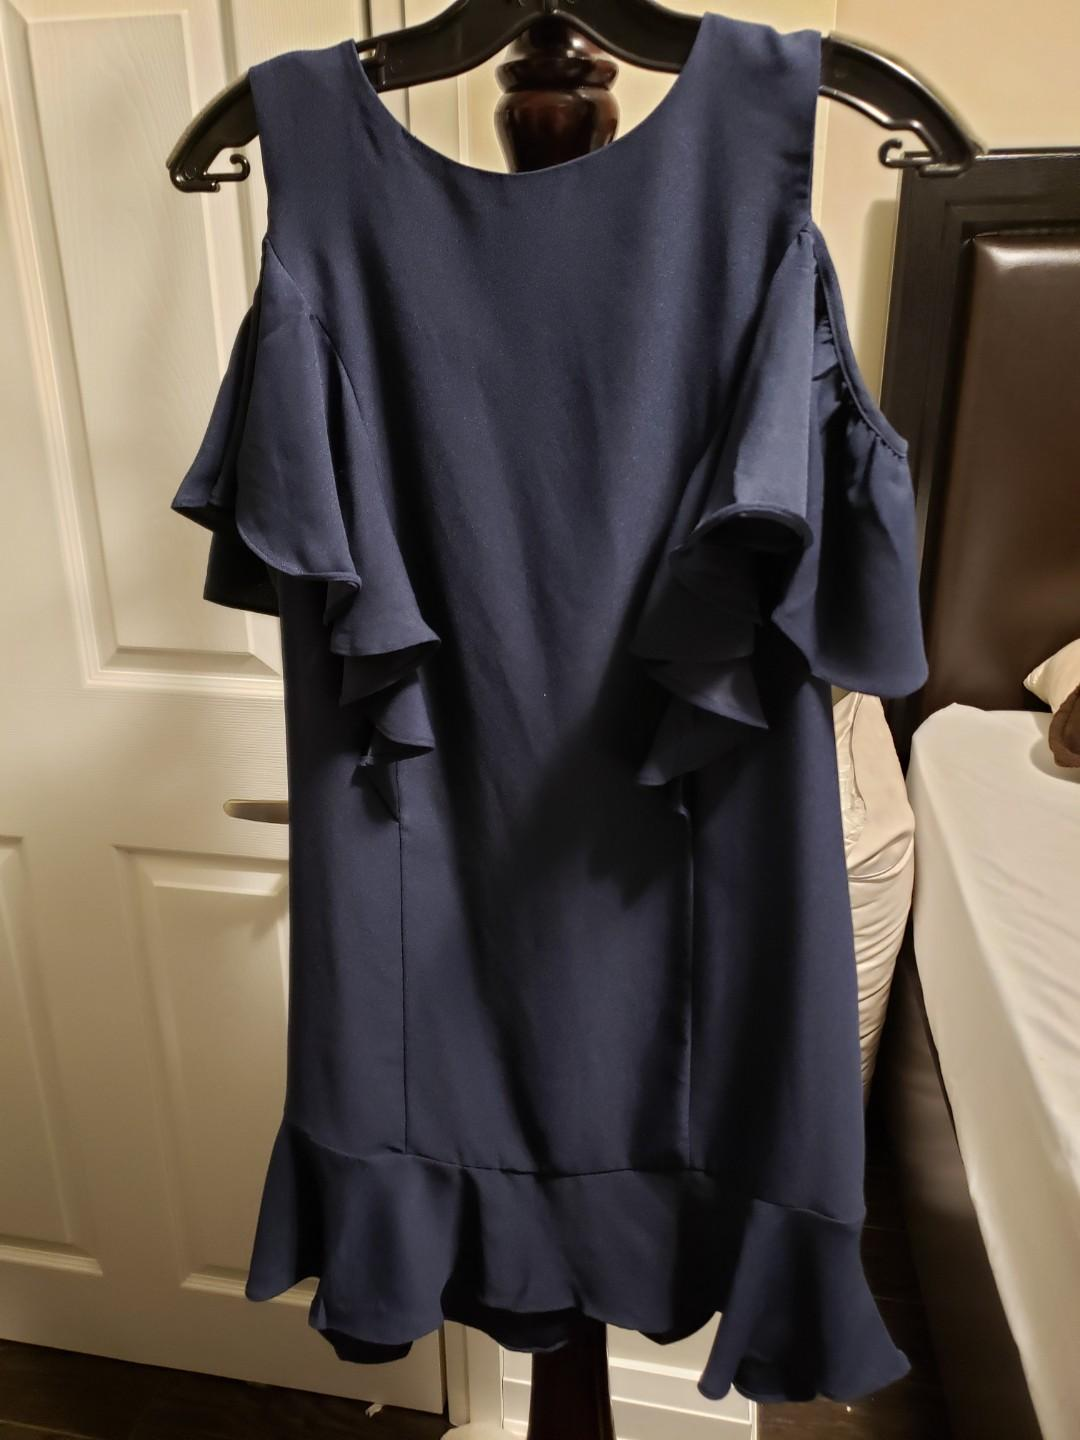 Sz 6 Mango Navy Dress, Cold Shoulders with ruffles